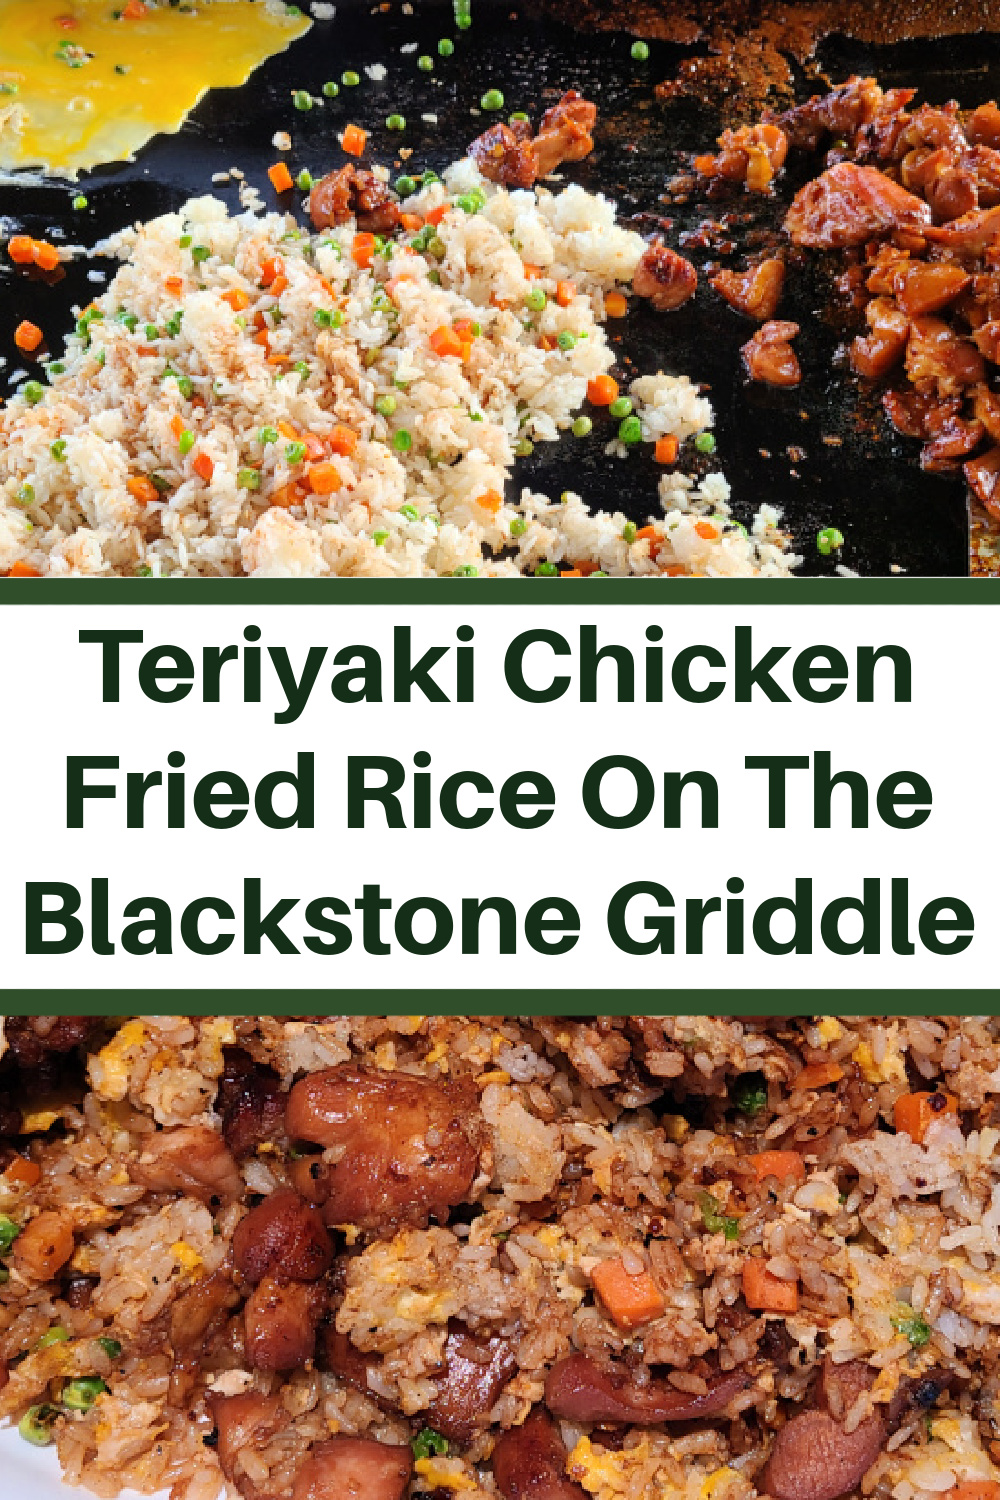 Teriyaki Chicken Fried Rice On The Blackstone Griddle! Use a teriyaki sauce and marinade to flavor the chicken thighs into the fried rice on the griddle.